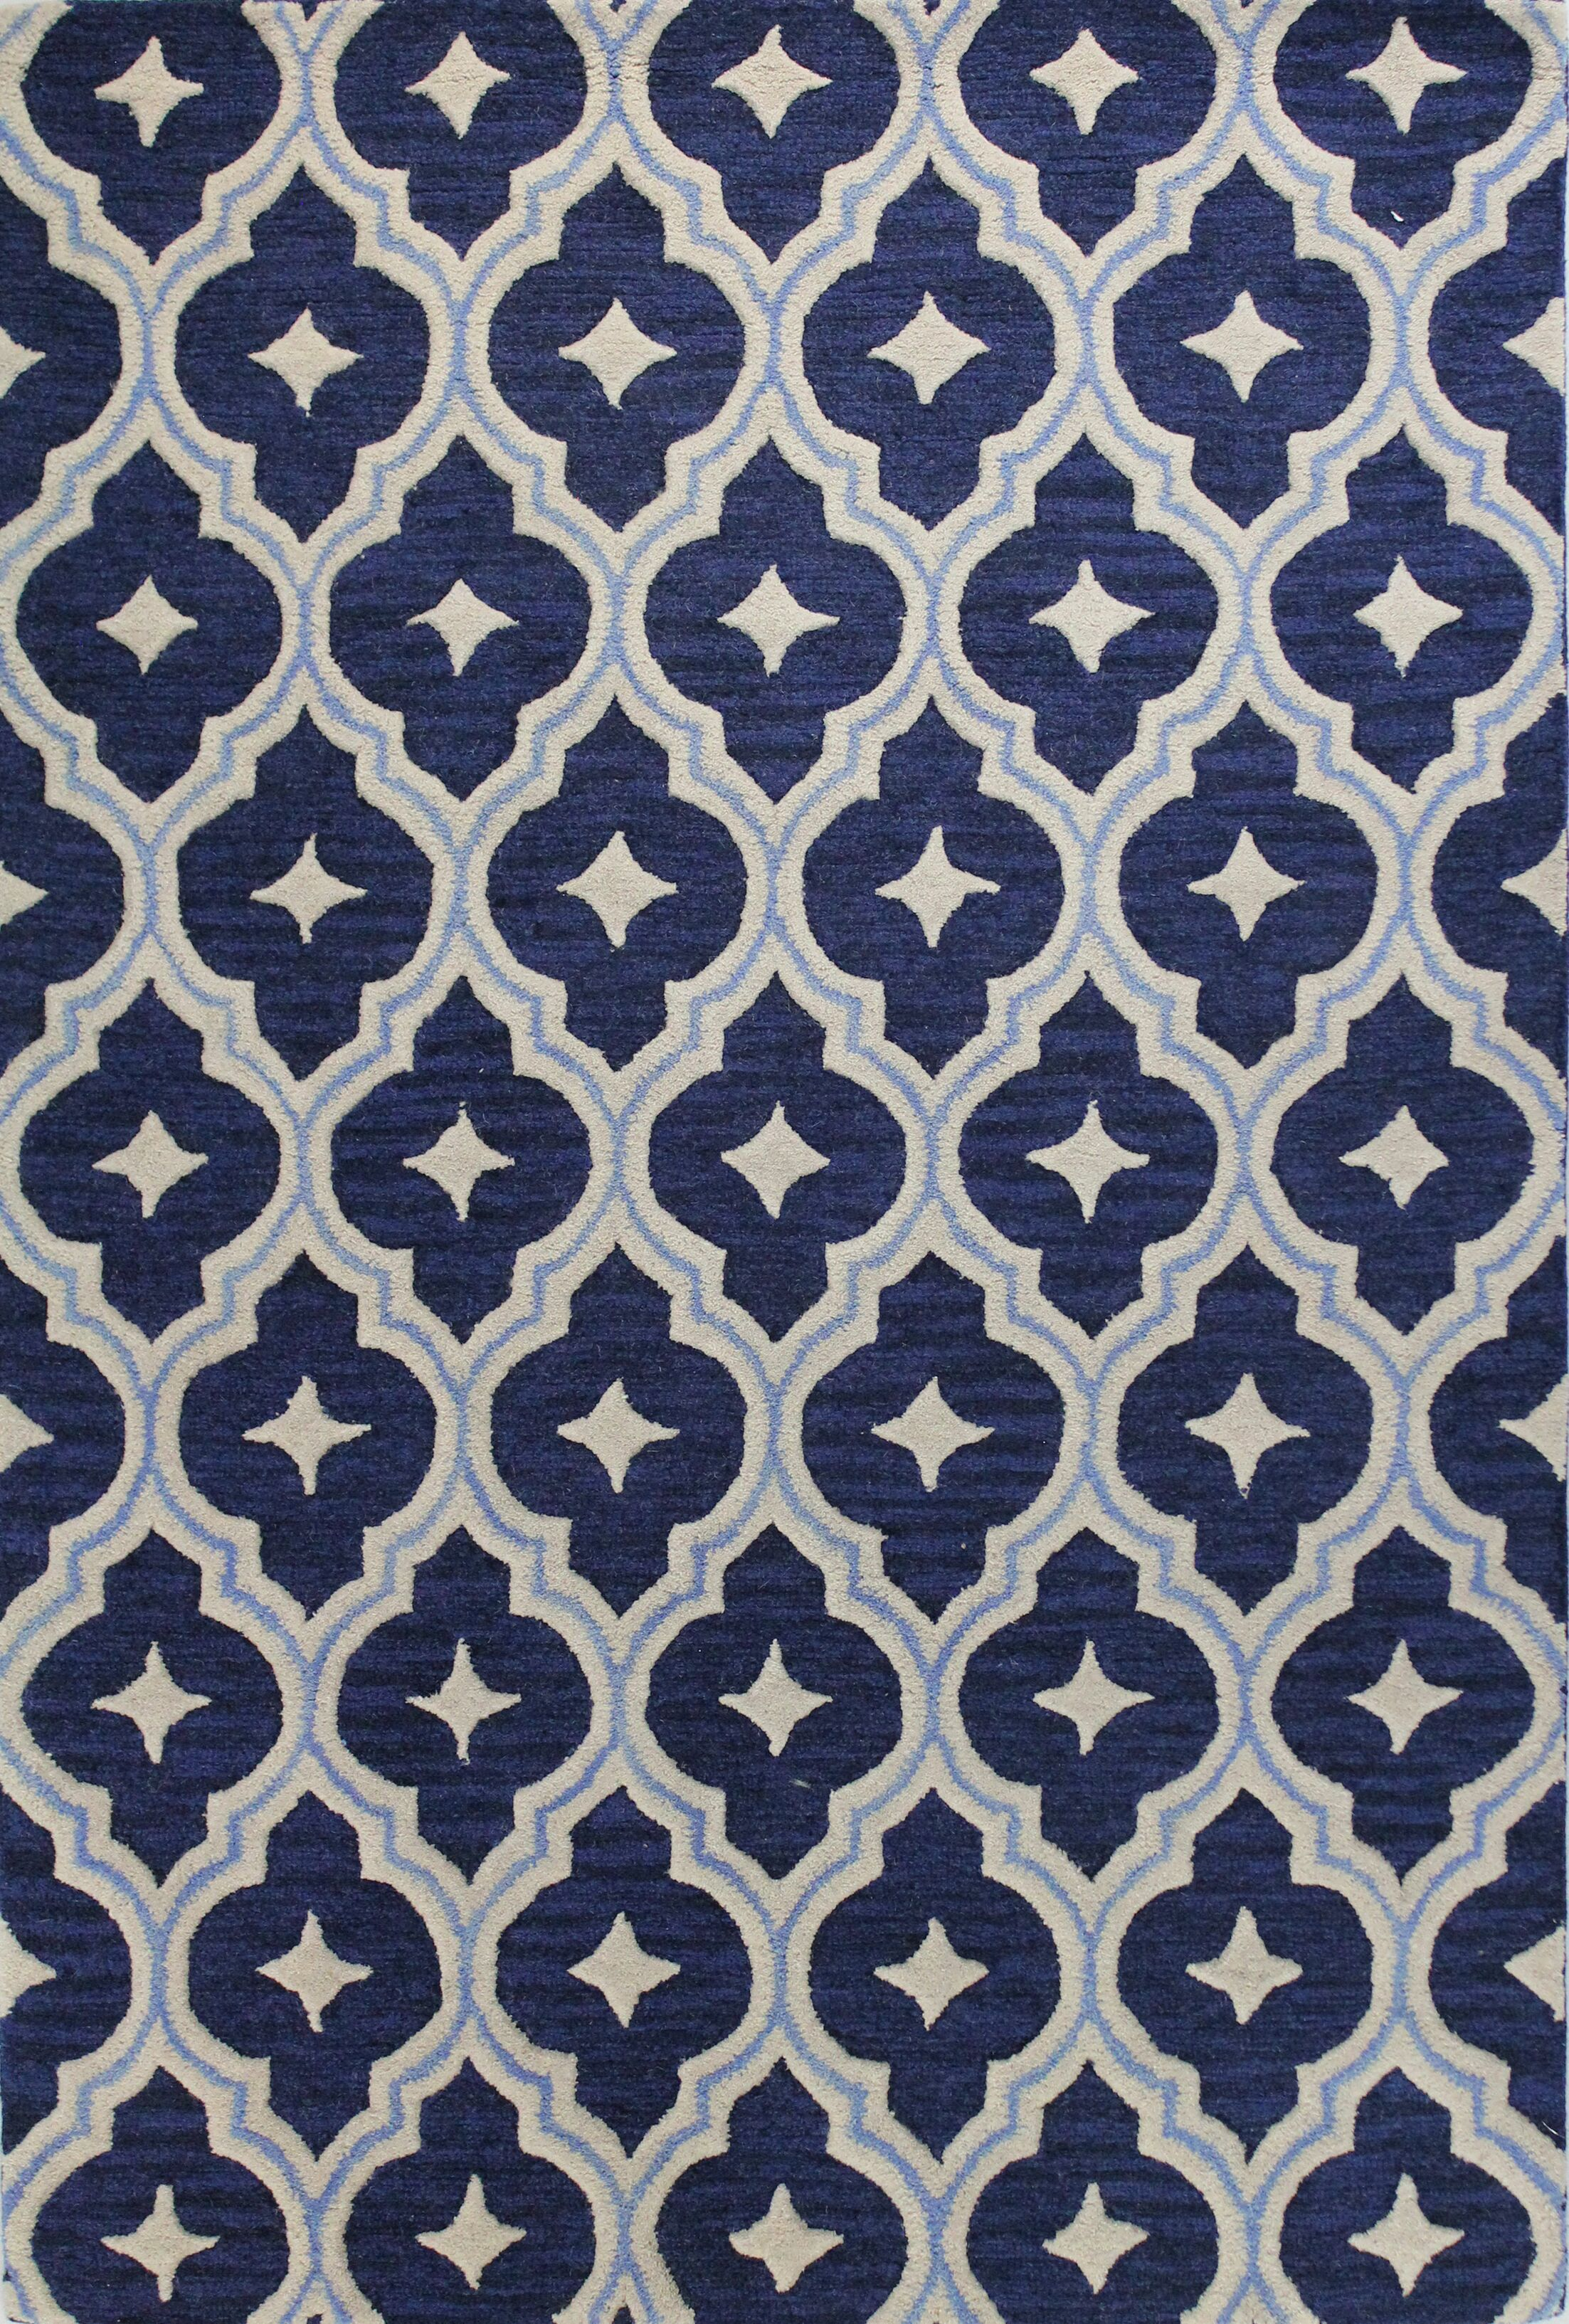 Norbert Hand-Tufted Navy Area Rug Rug Size: Rectangle 7'6